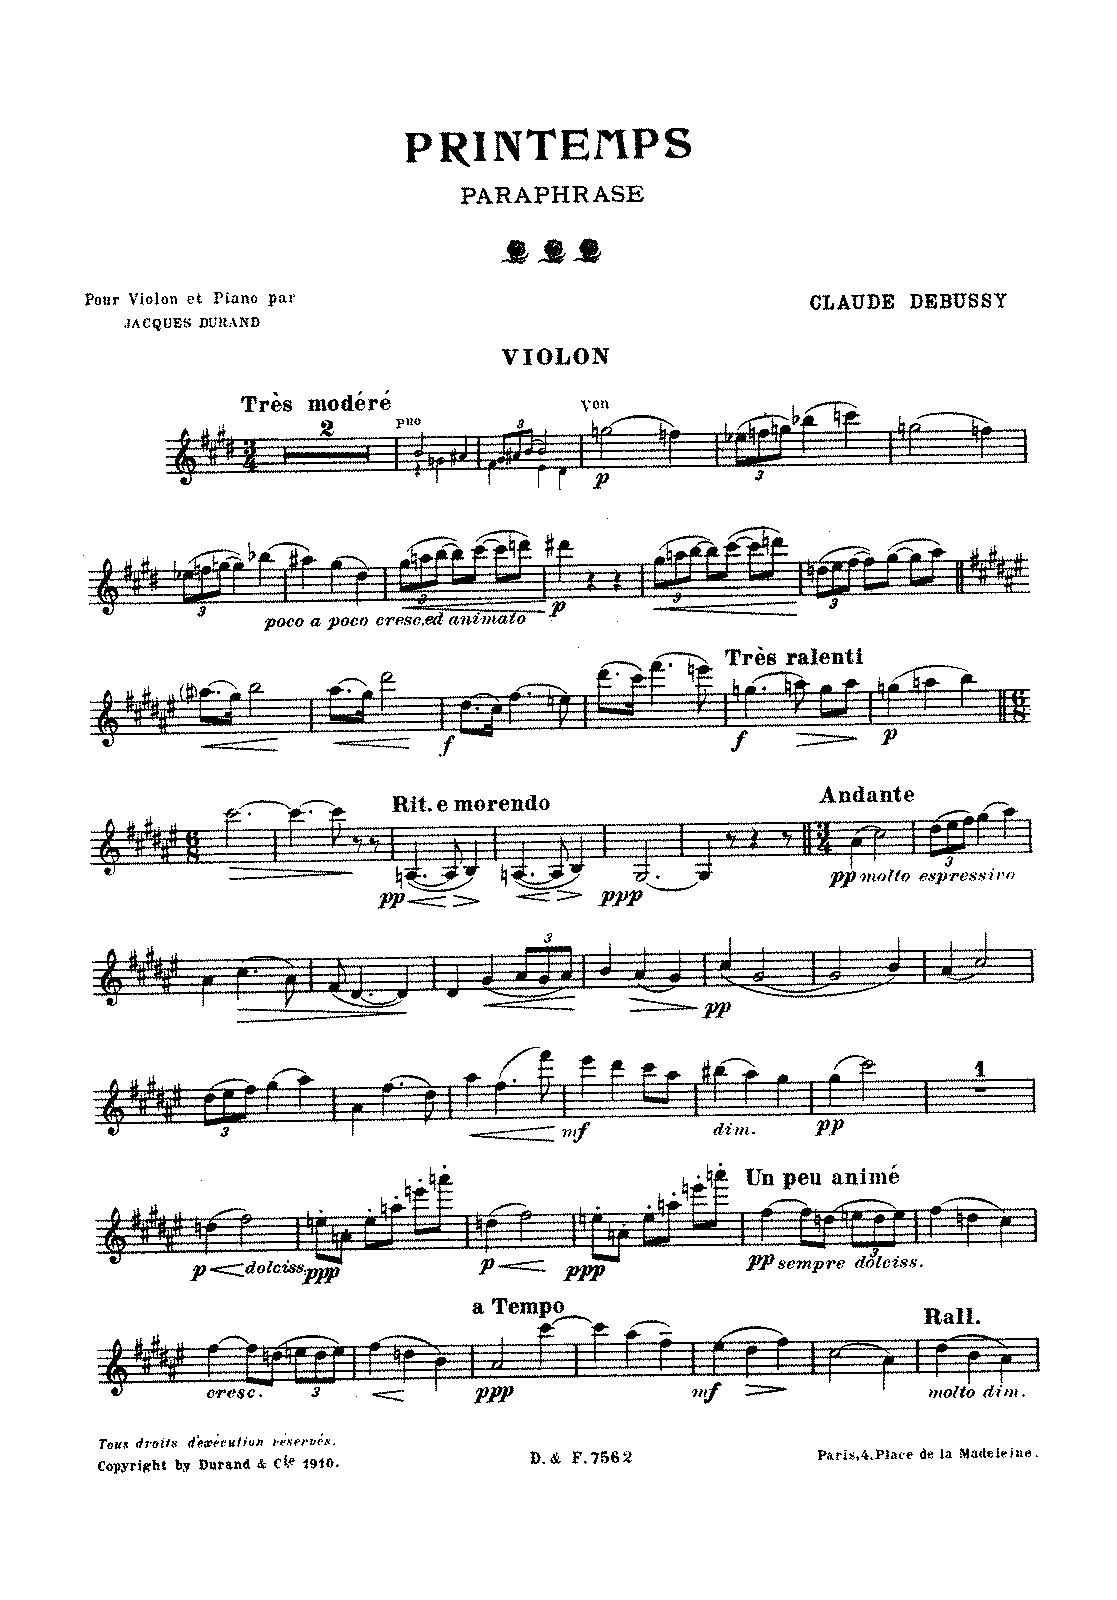 Debussy - Printemps (paraphrase by Durand - violin and piano).pdf